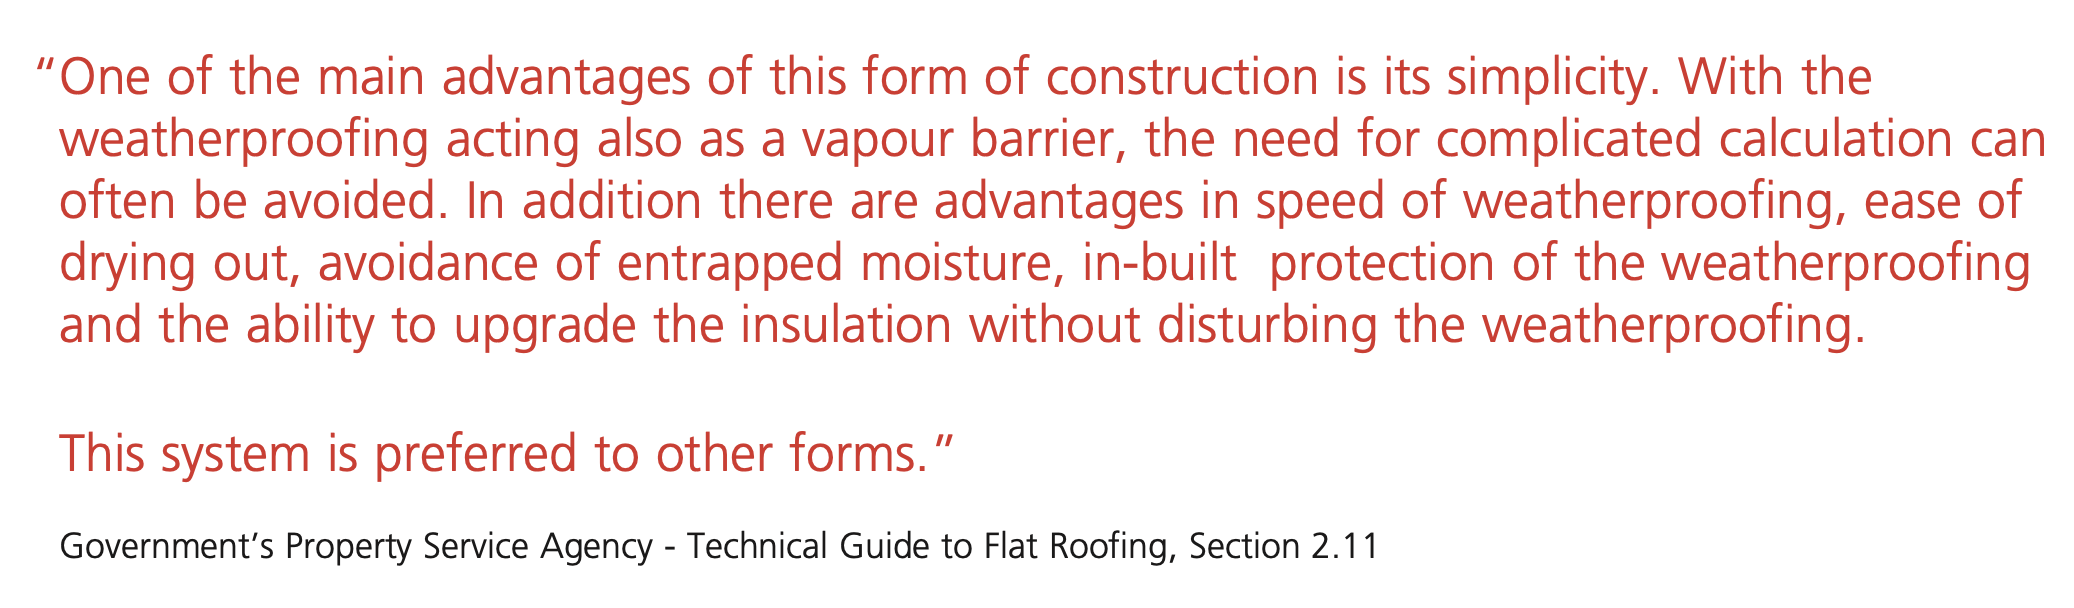 Benefits of Hot Melt Roofing